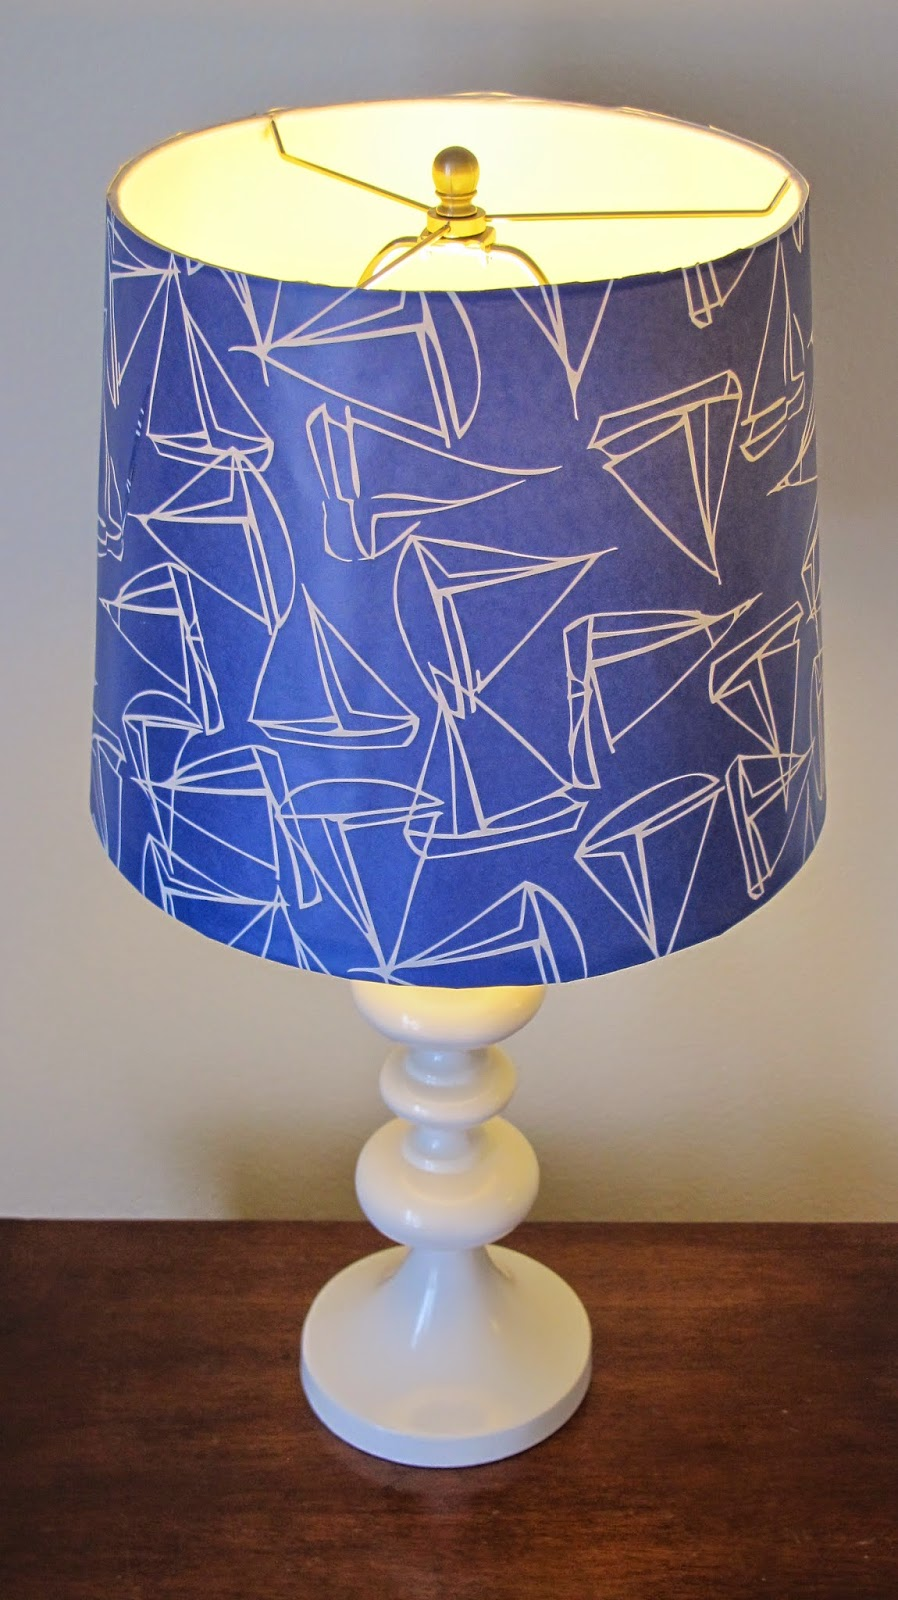 Nautical by Nature: My Apartment: DIY Nautical Wallpaper Lamp Shade Project